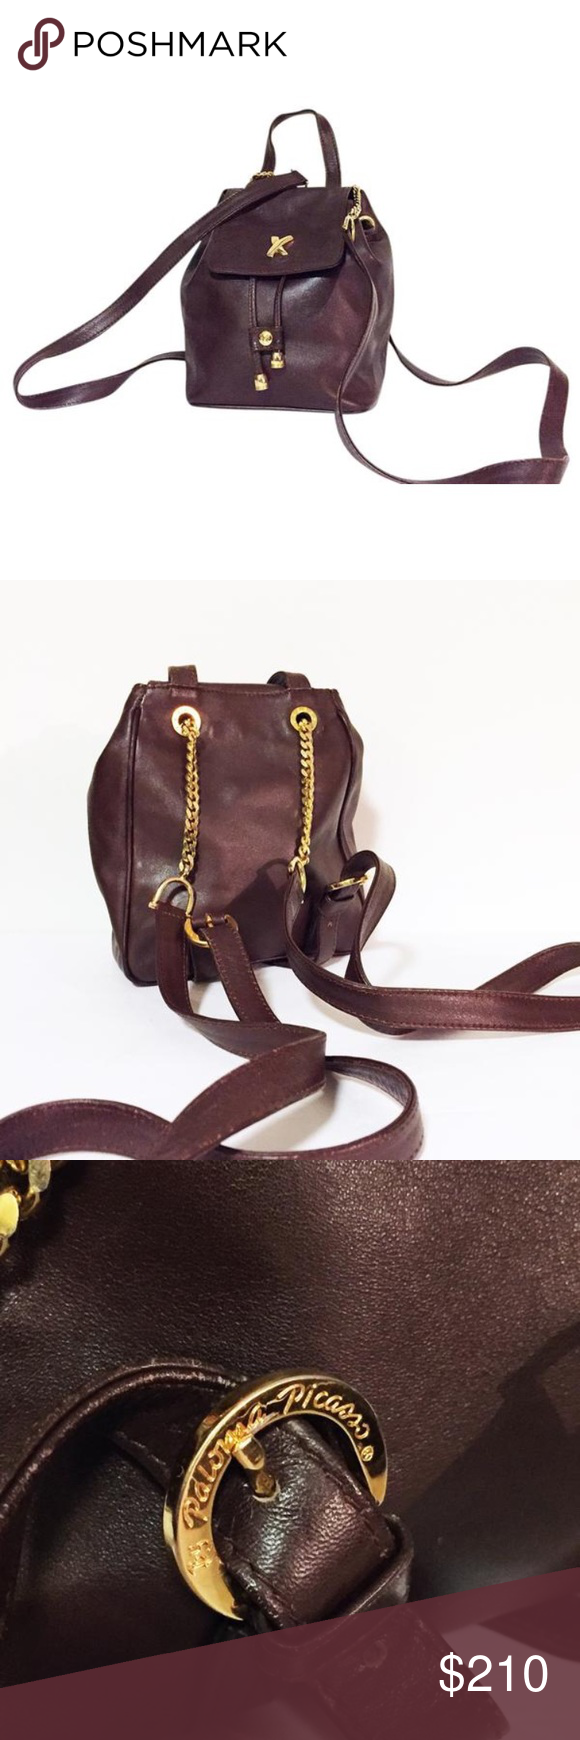 d8c51f142 Paloma Picasso brown leather mini backpack Gorgeous vintage Paloma Picasso  mini backpack with chain straps. Luxurious brown leather.